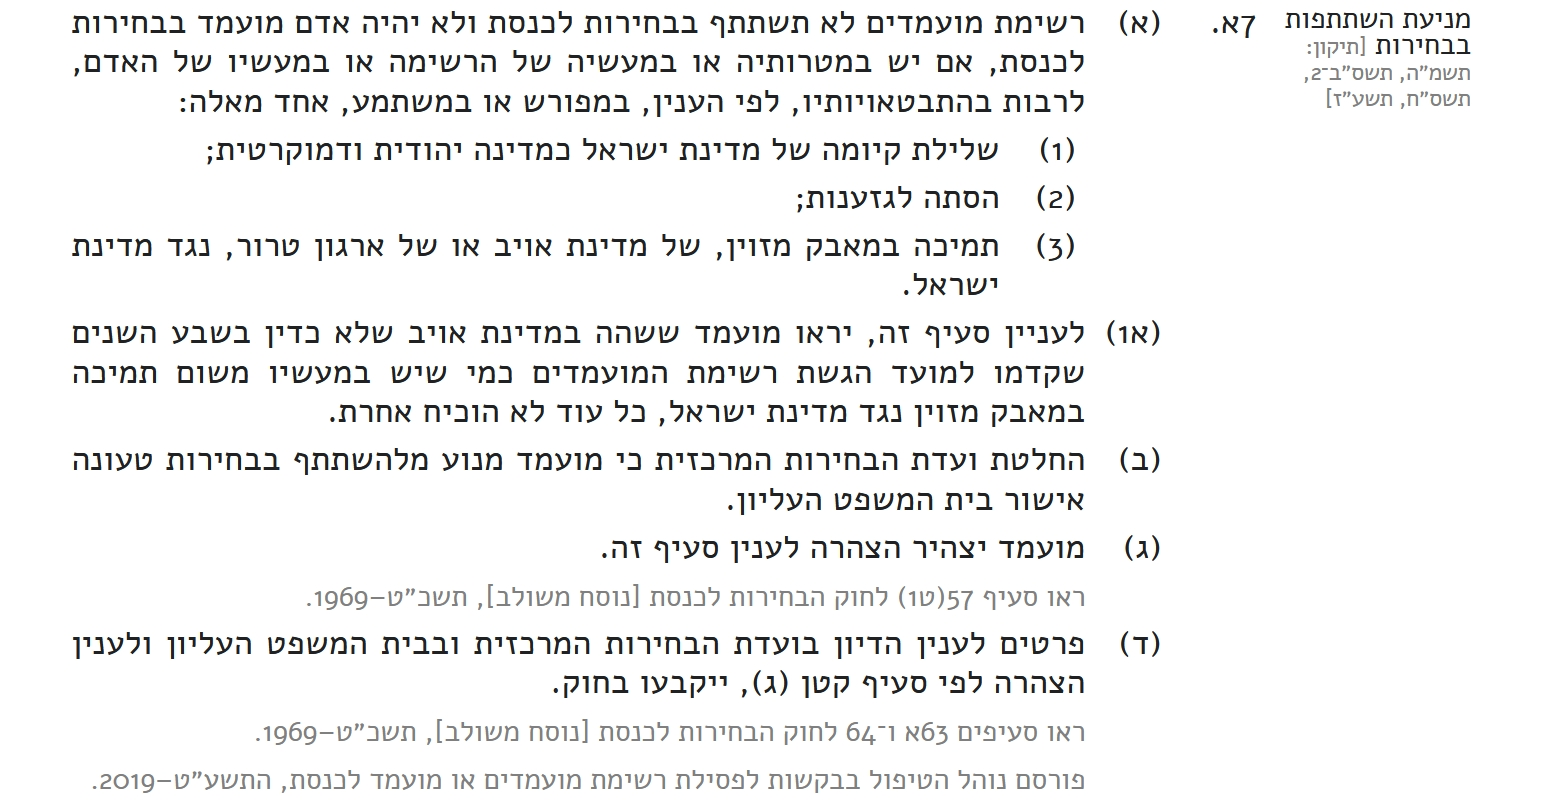 Basic Law The Knesset Wikisource